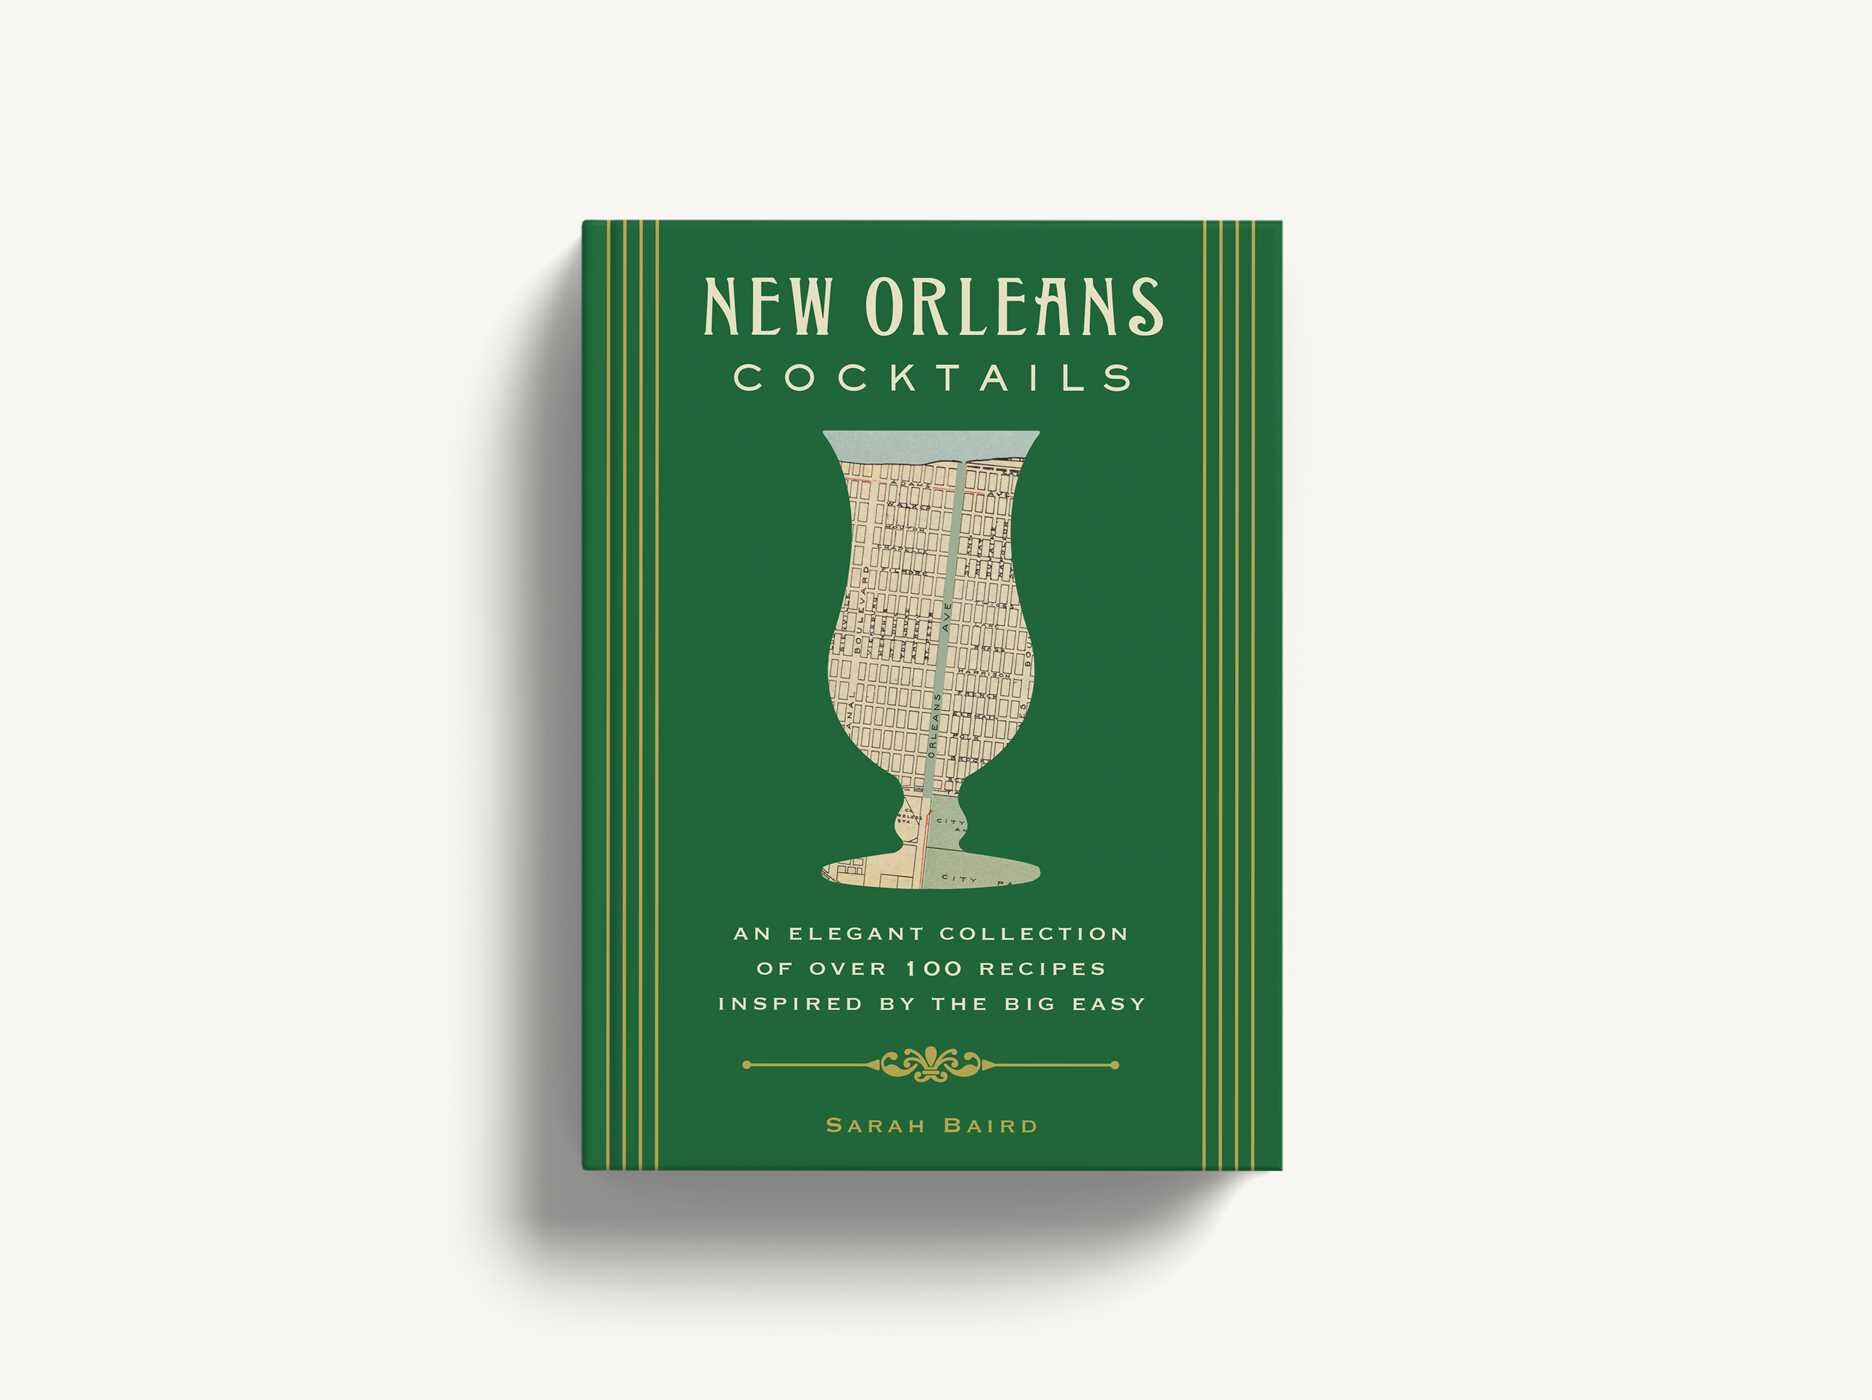 New orleans cocktails 9781604336436.in01